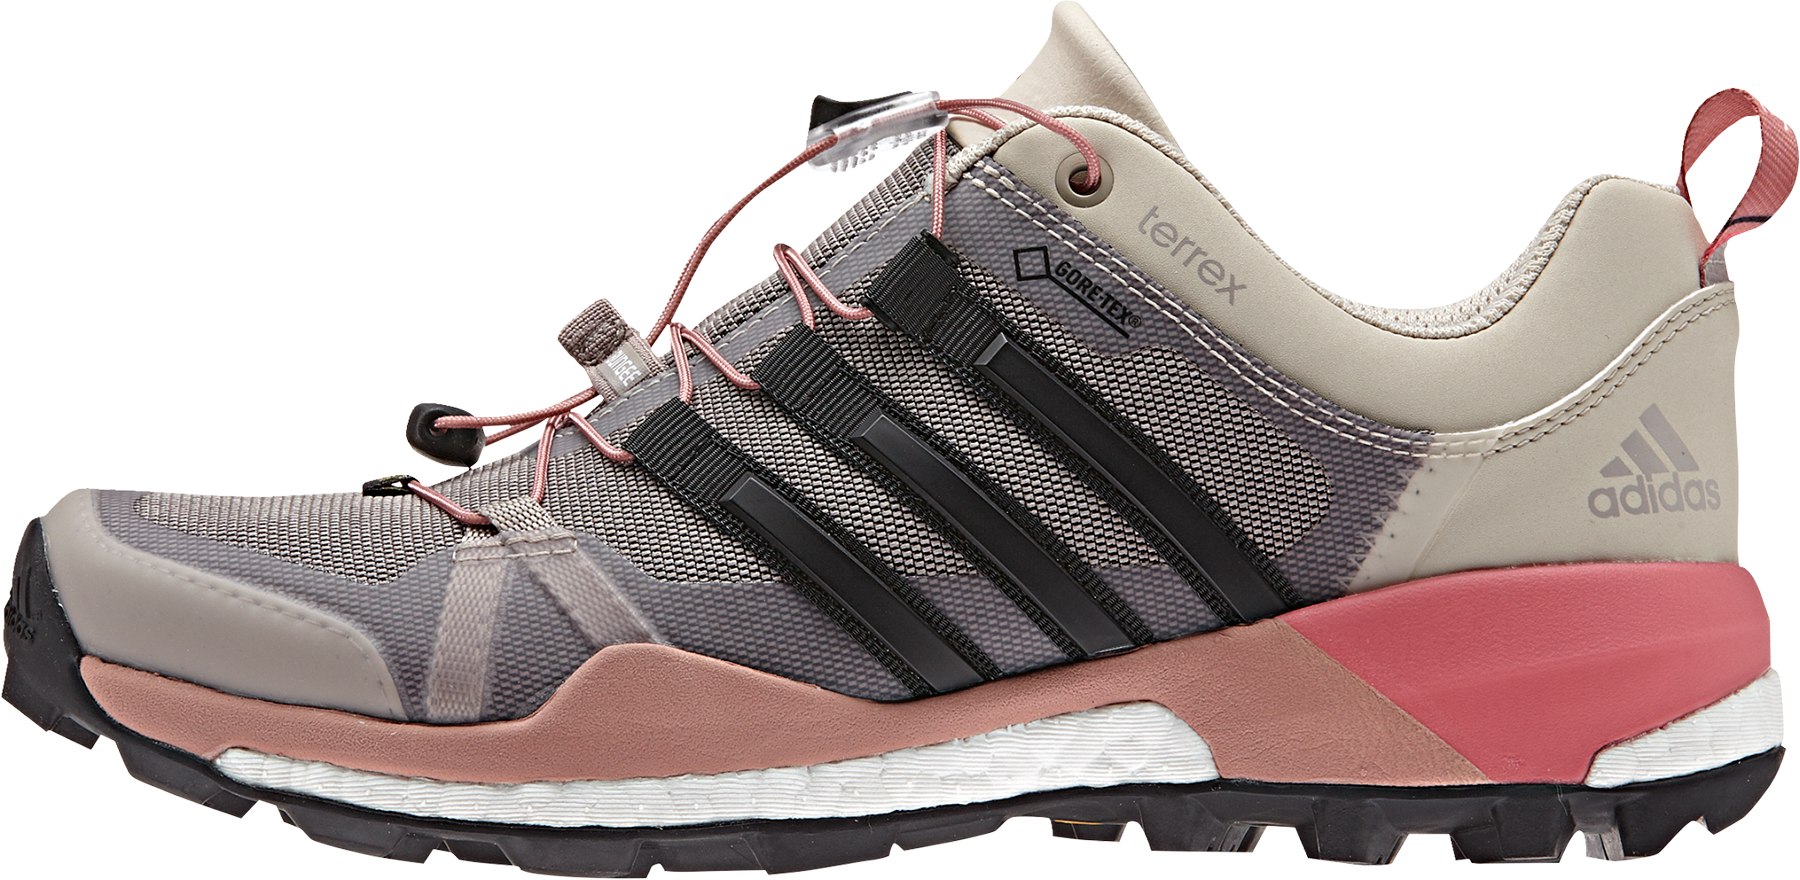 wiggle.com | adidas Women's Terrex Skychaser GTX Shoes | Shoes